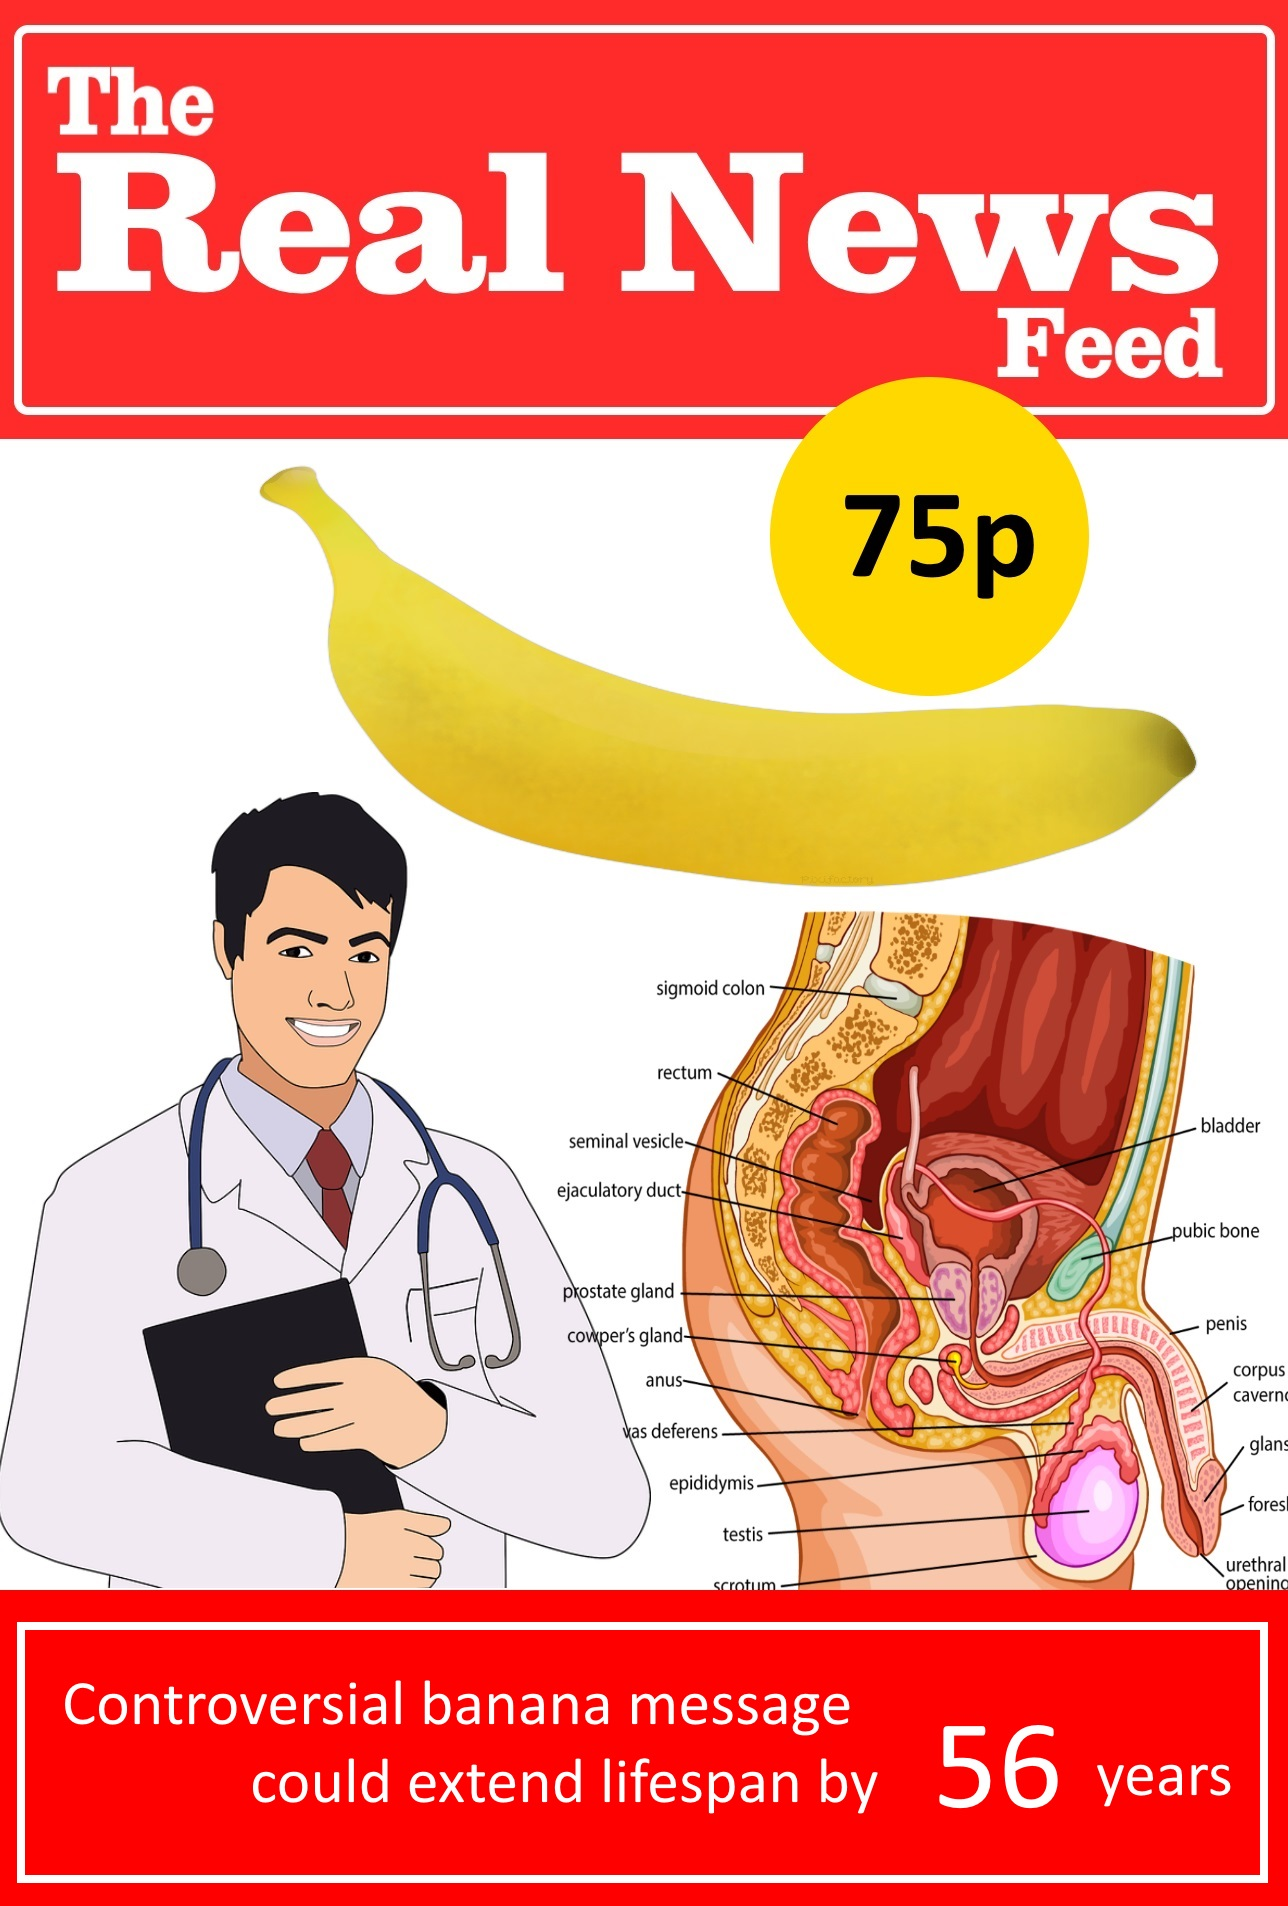 Scientists declare that massaging the prostate with a banana can extend  lifespan by decades.